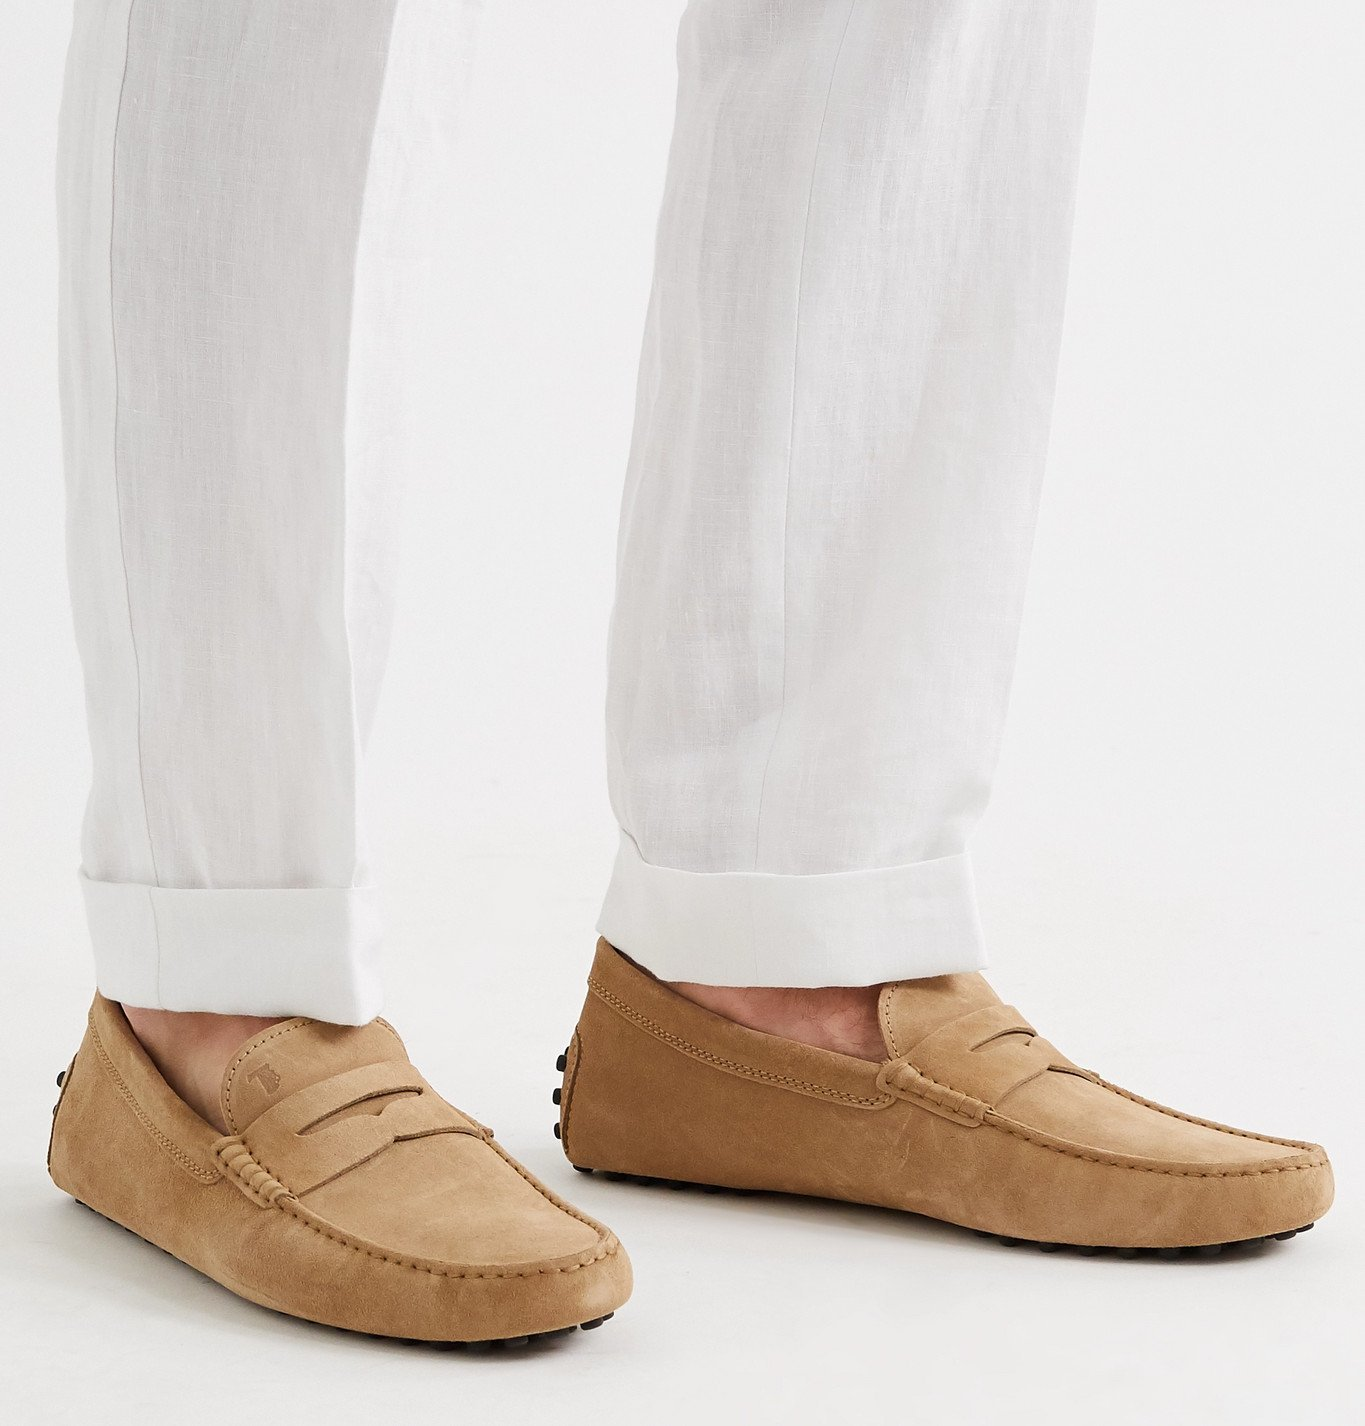 Tod's - Gommino Suede Driving Shoes - Neutrals